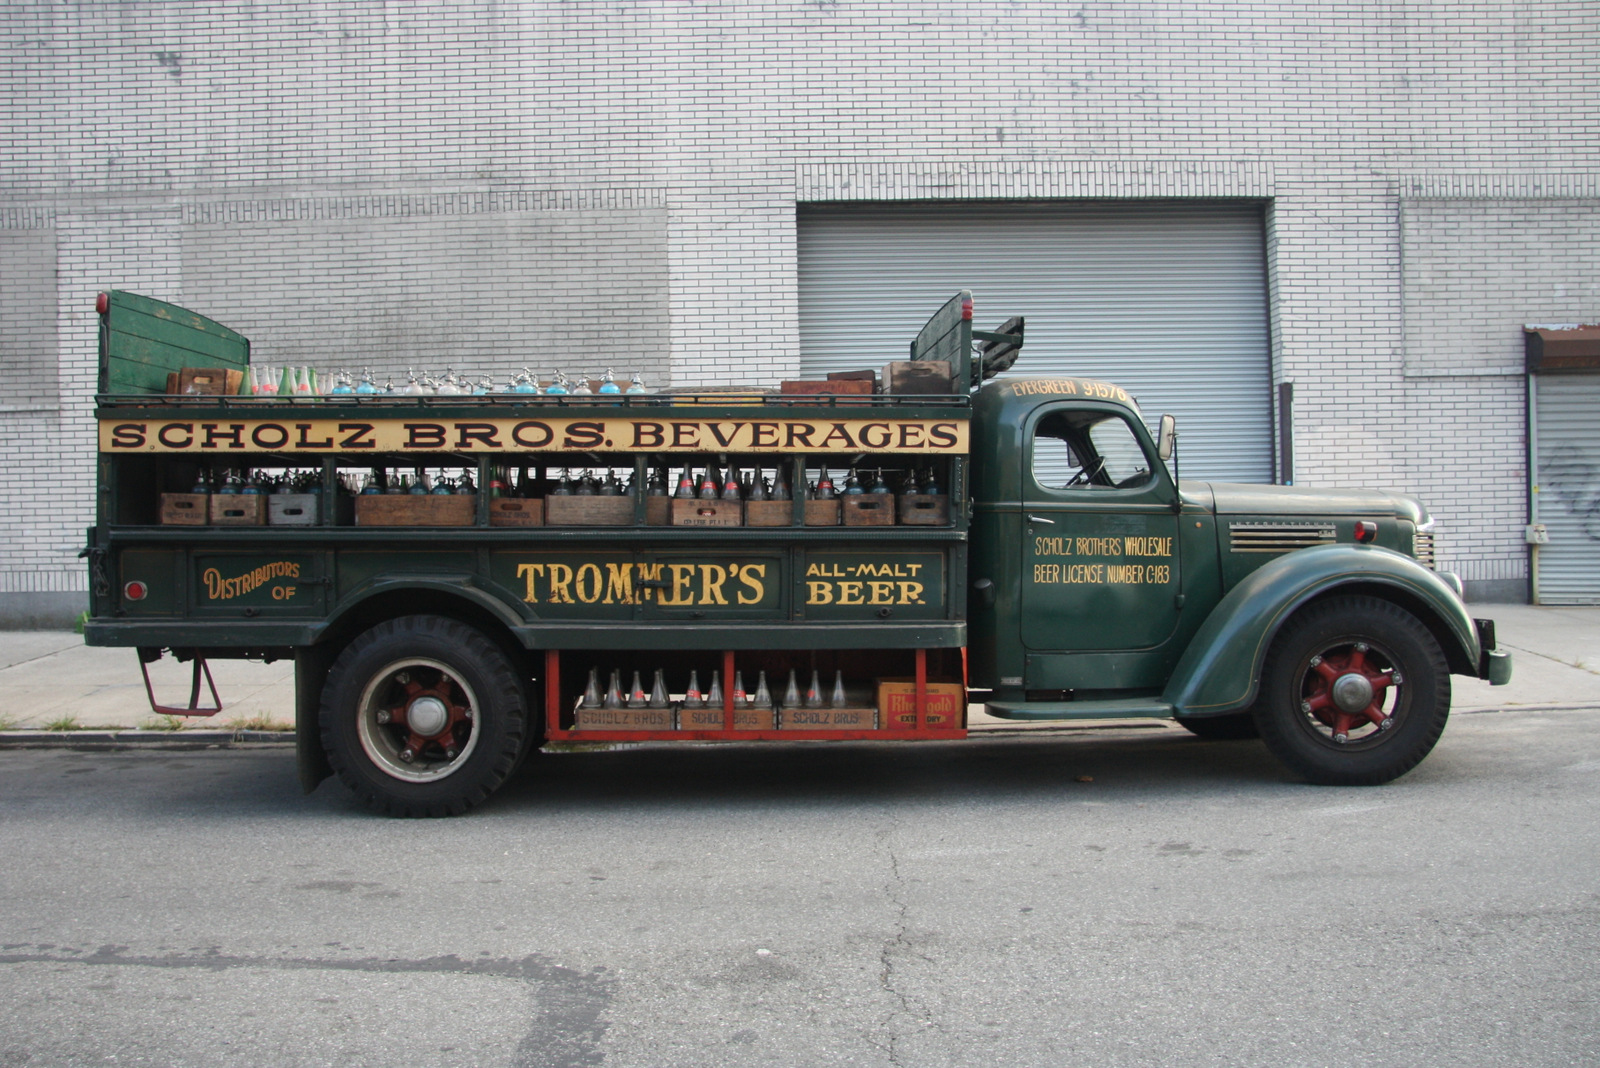 70 years later, this International truck still delivers thumbnail